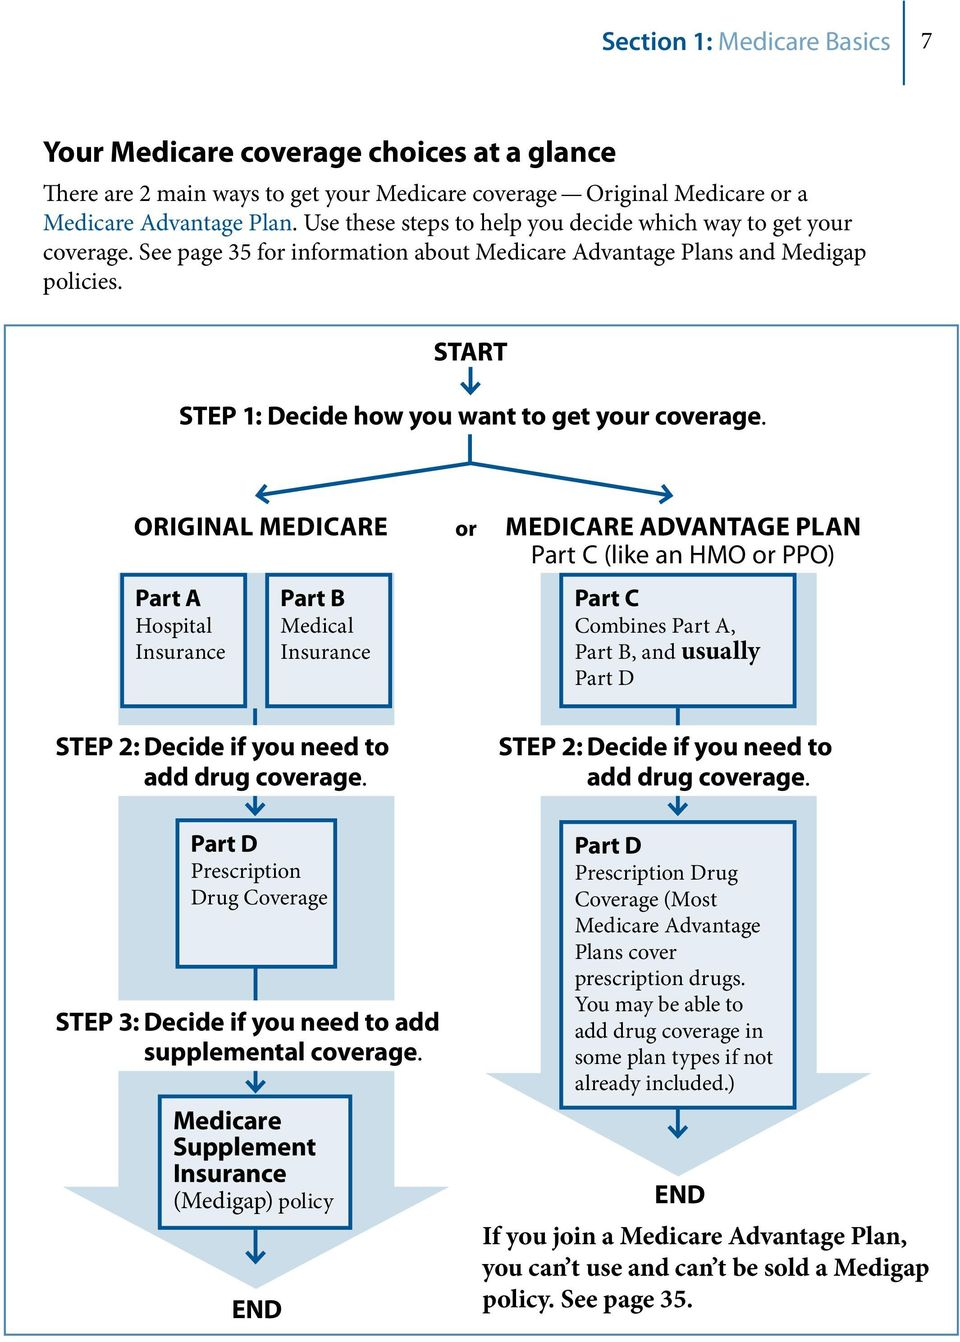 START STEP 1: Decide how you want to get your coverage.